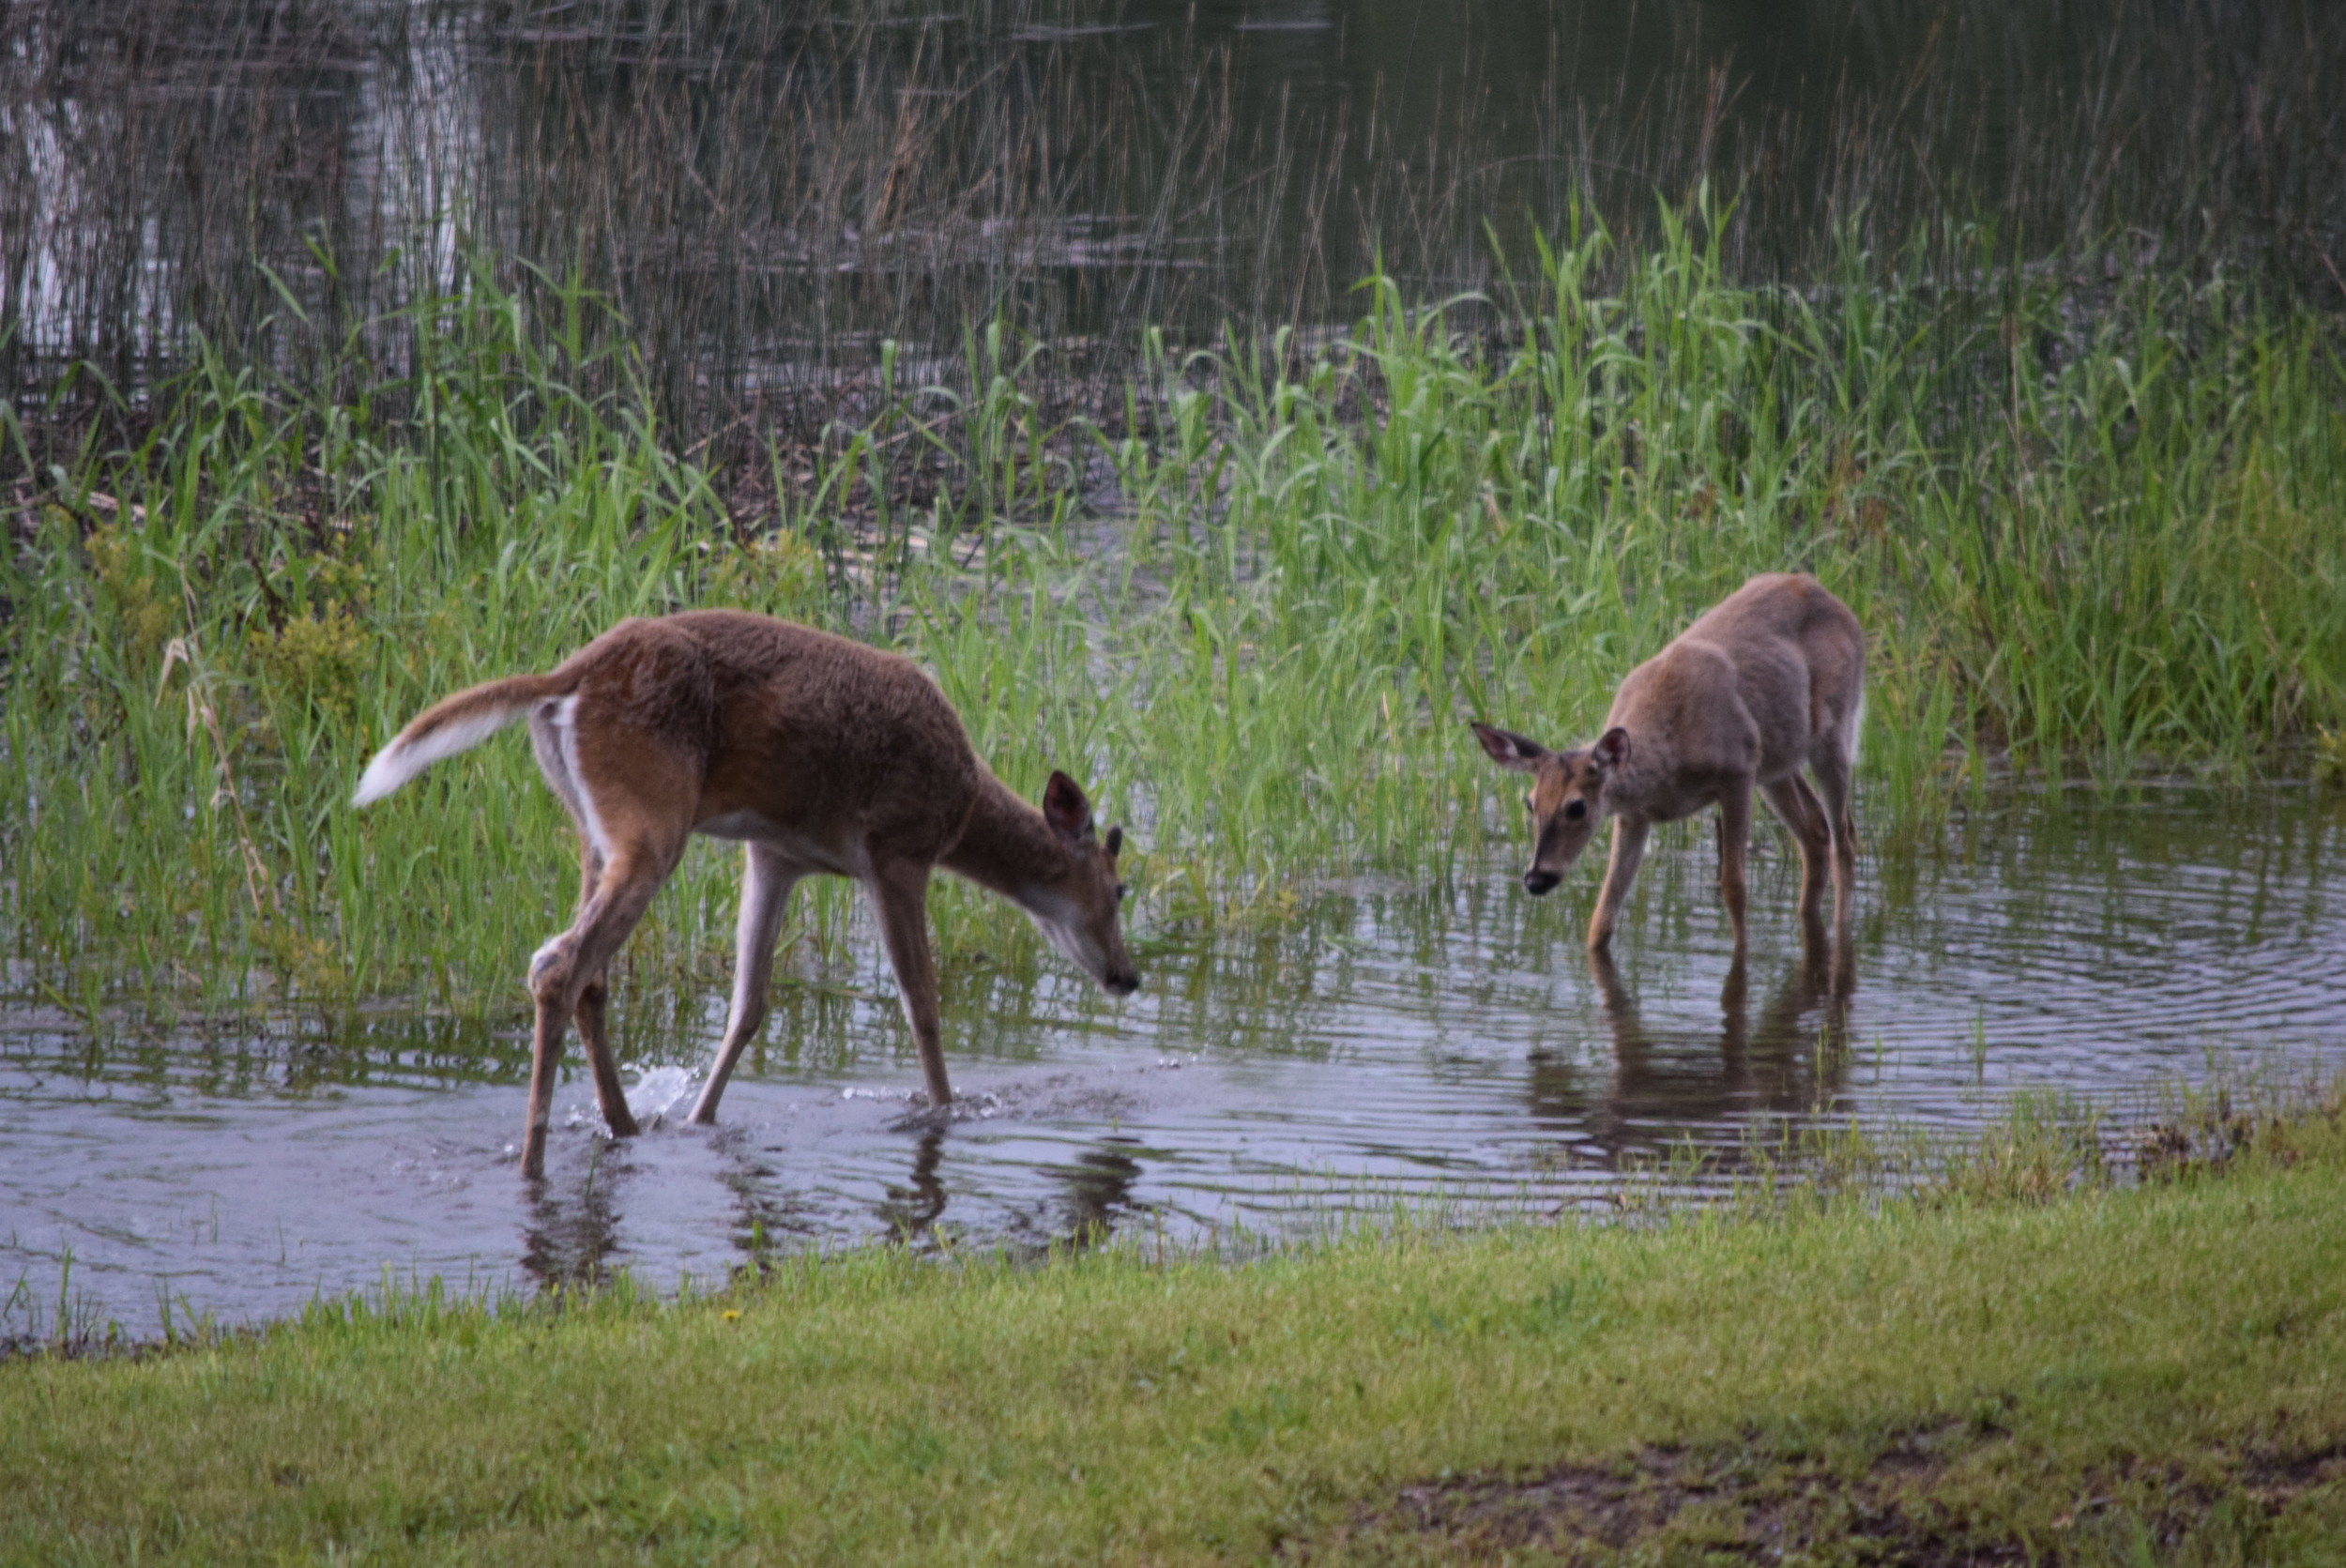 These bucks were playing and splashing in the water.